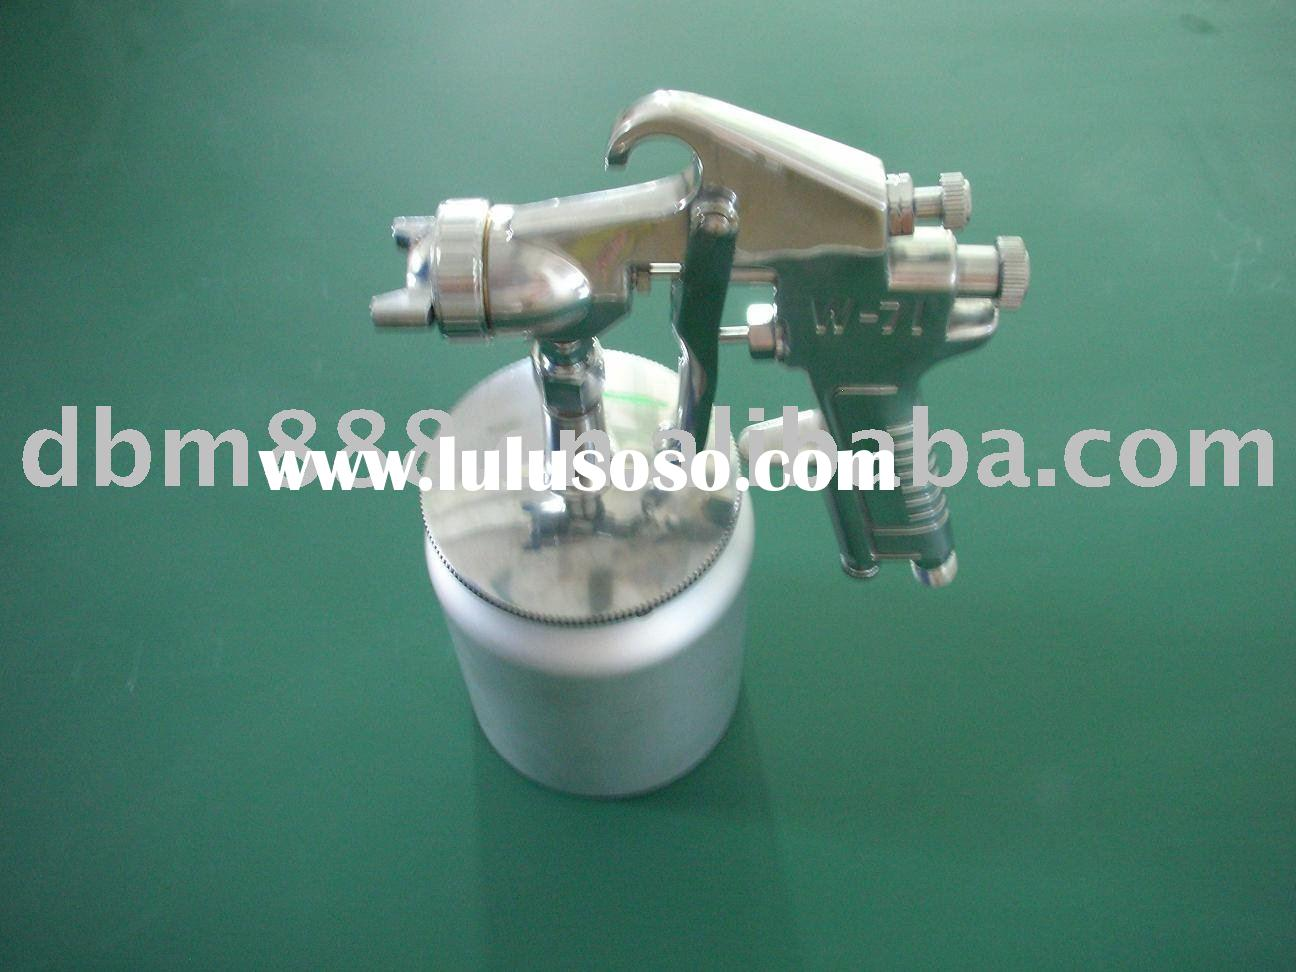 High-quality Paint Spray Gun W-71 with Taiwan Technology